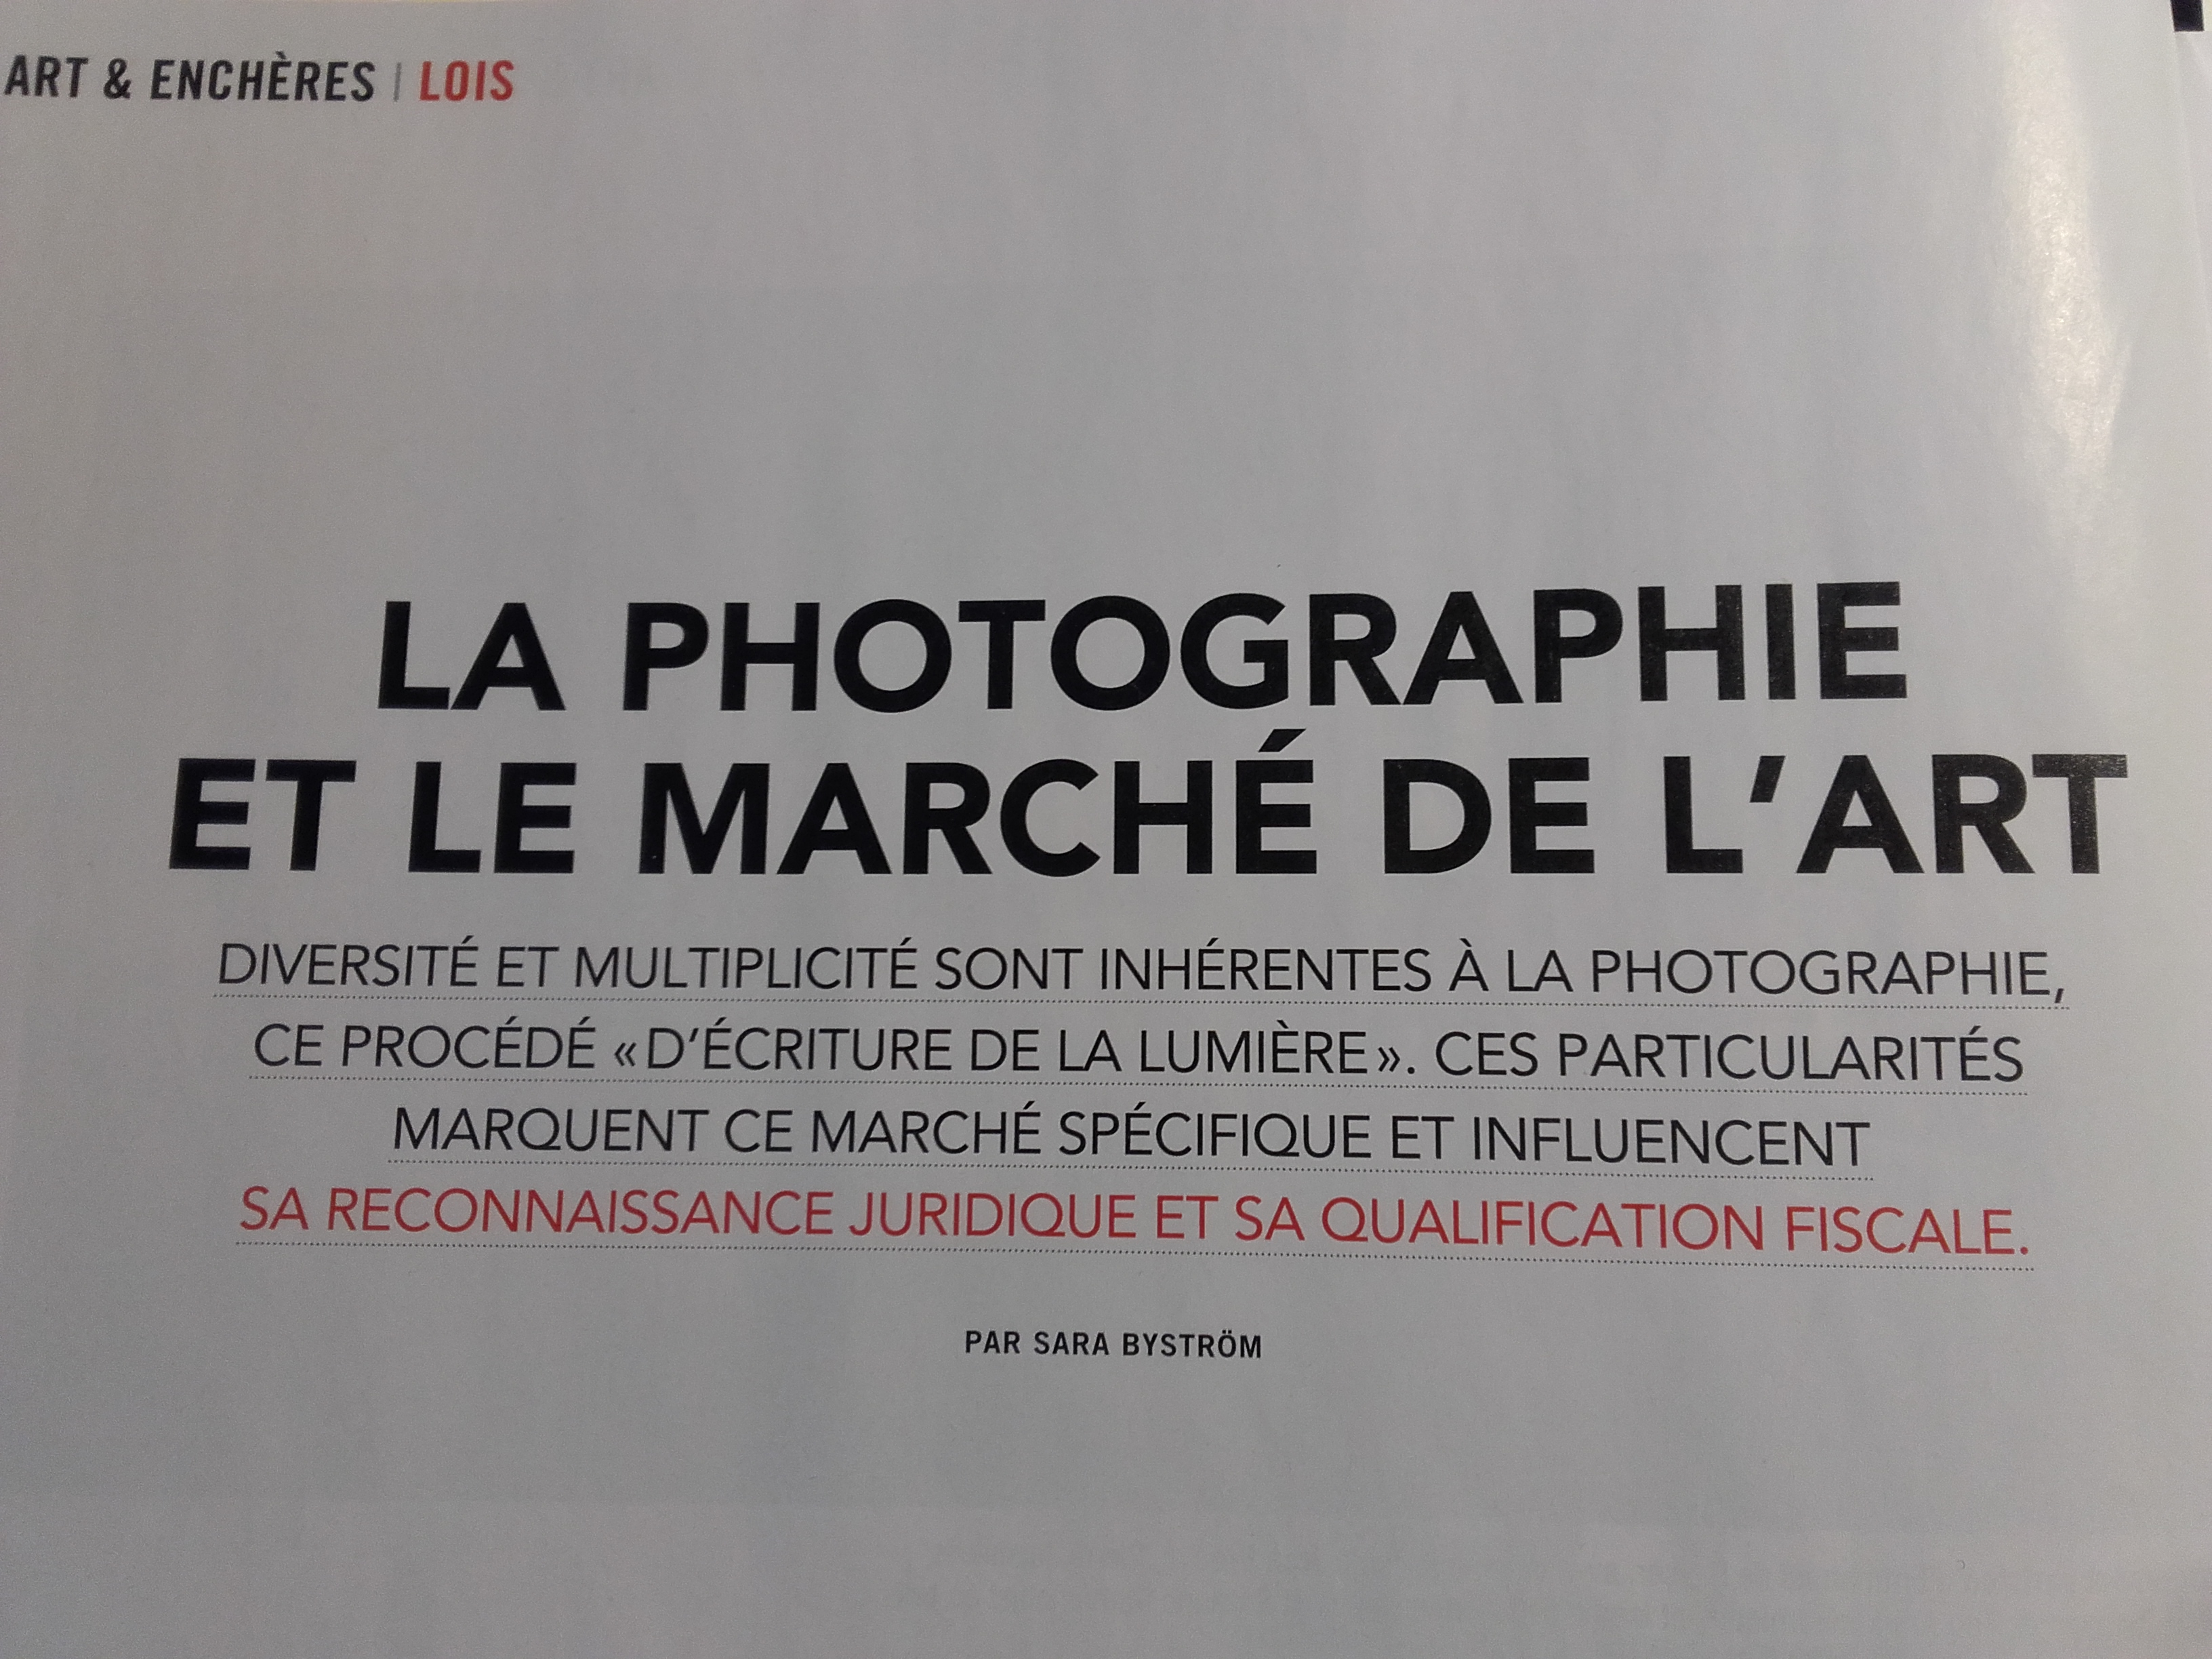 """La photographie et le marché de l'art"" in La Gazette Drouot"